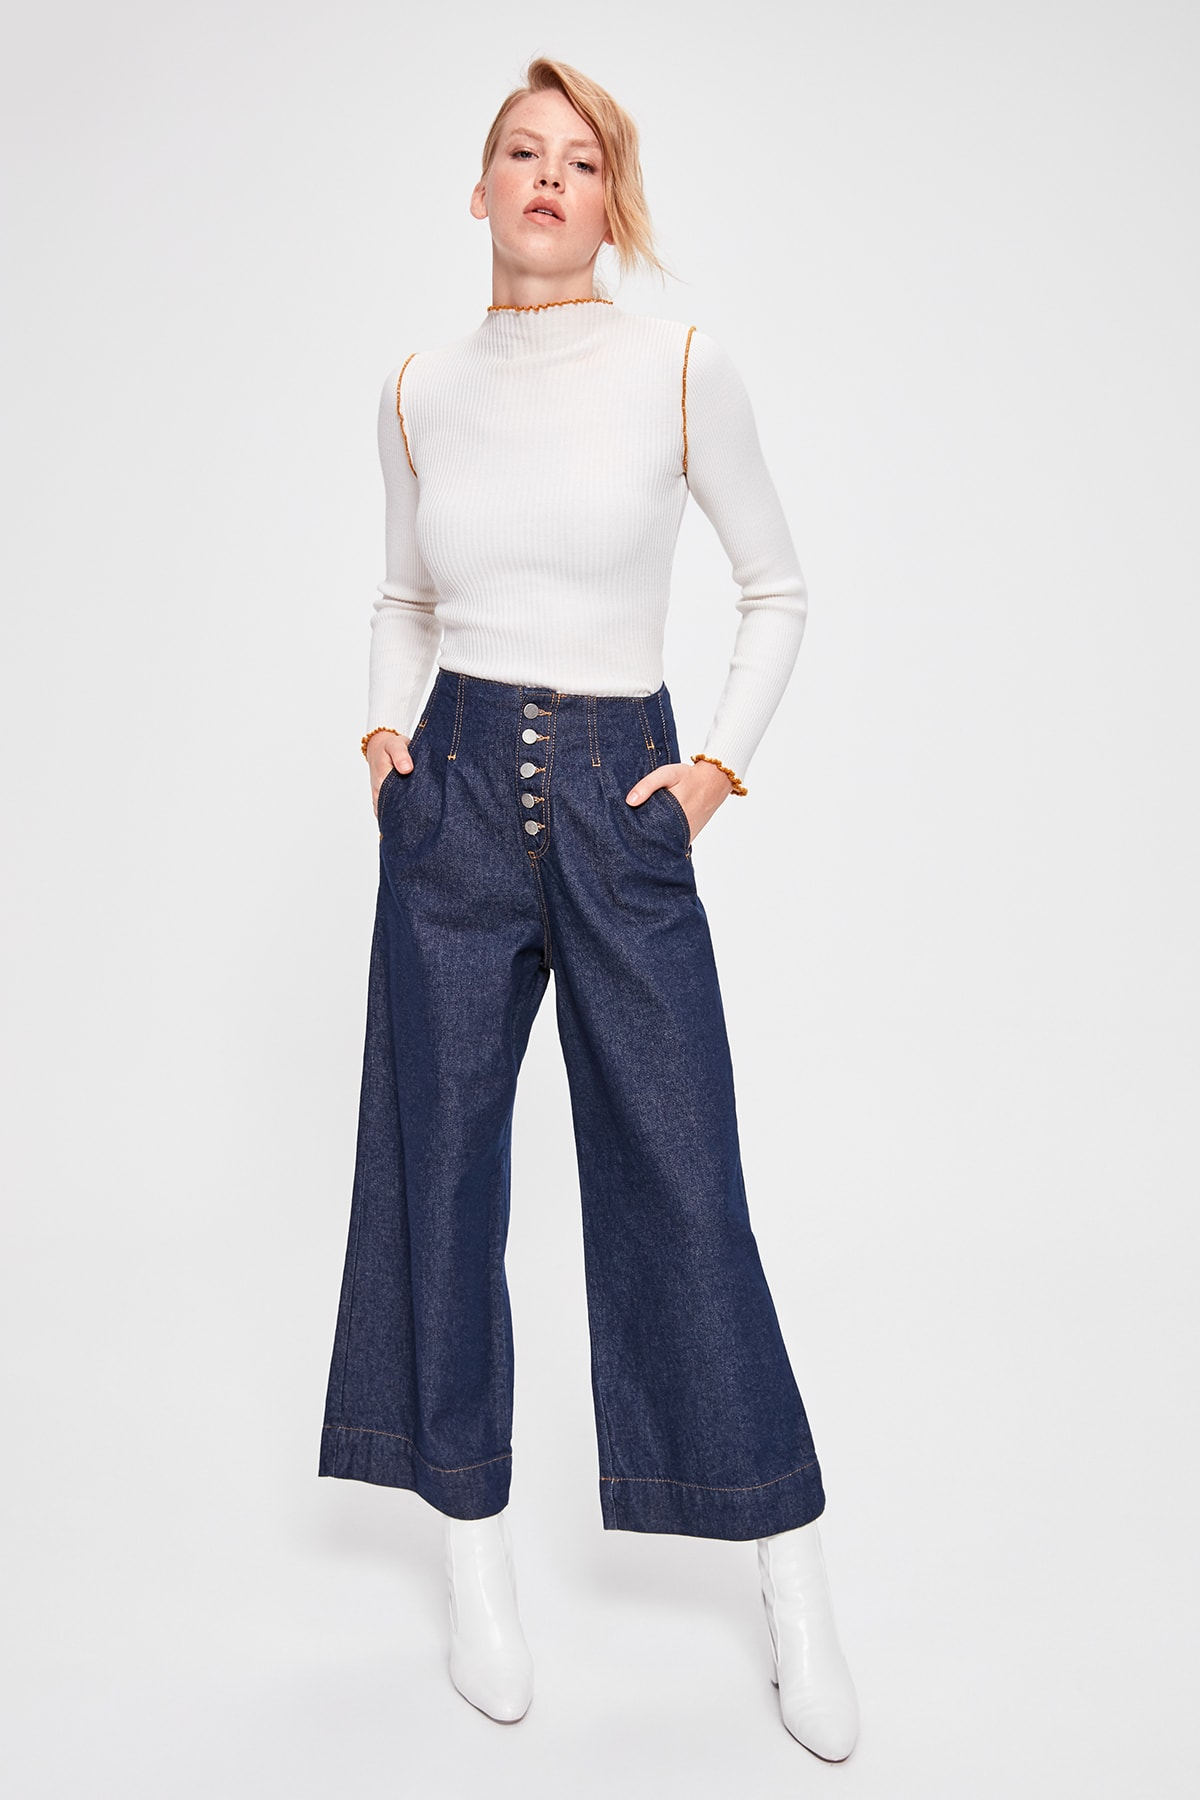 Trendyol Blue Stitch Detail High Bel Wide Leg Jeans TWOAW20JE0144